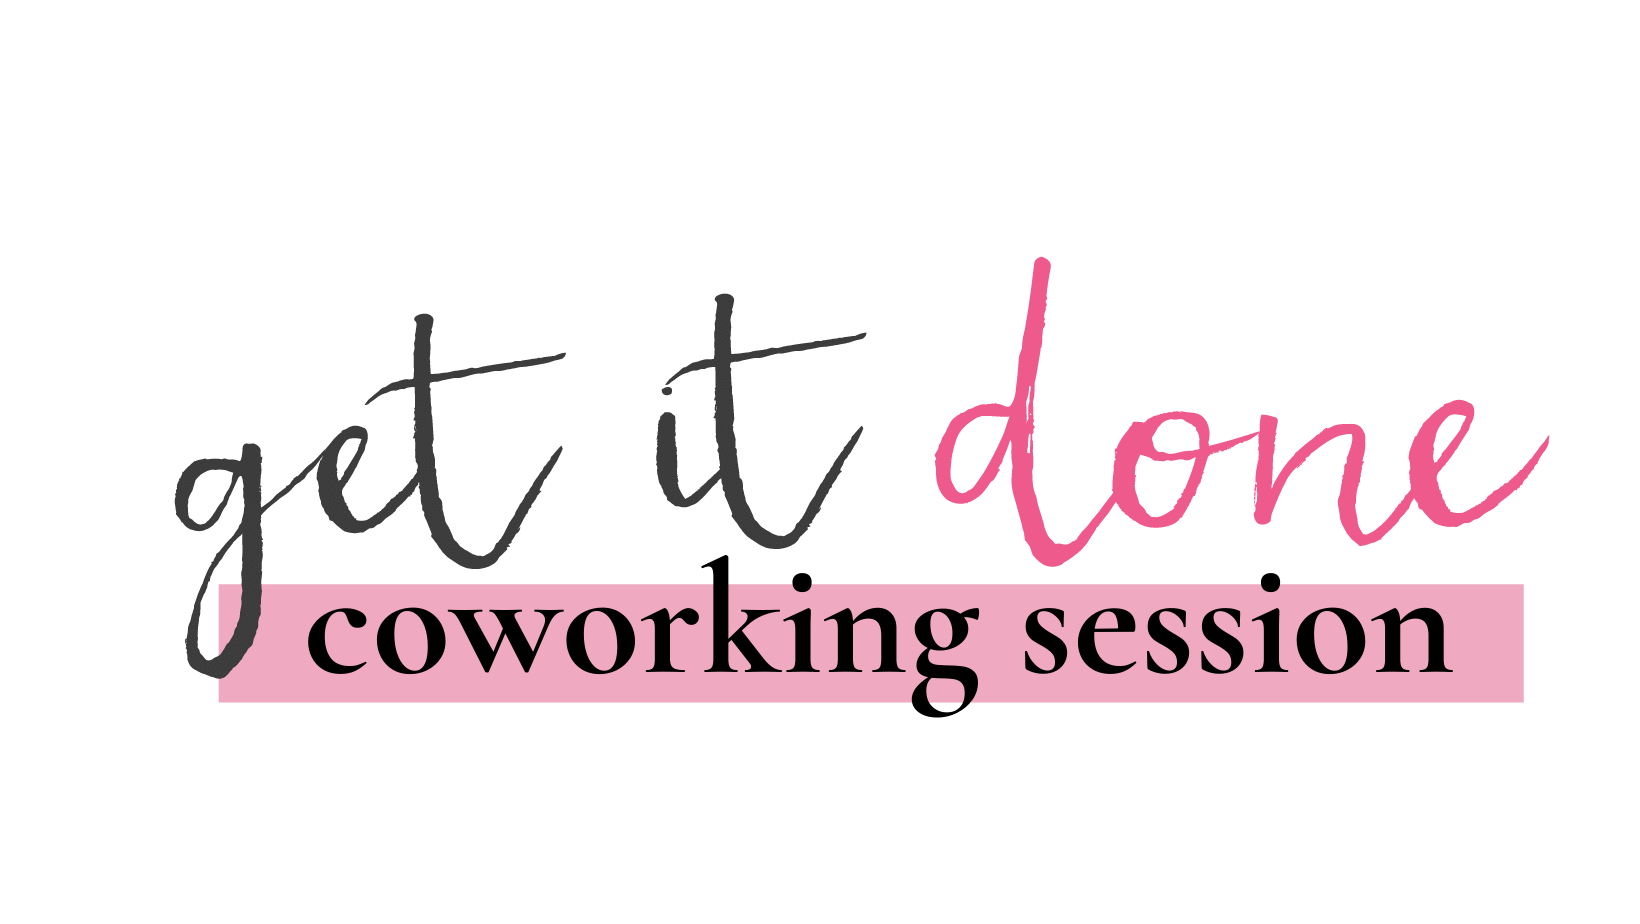 Get it Done coworking